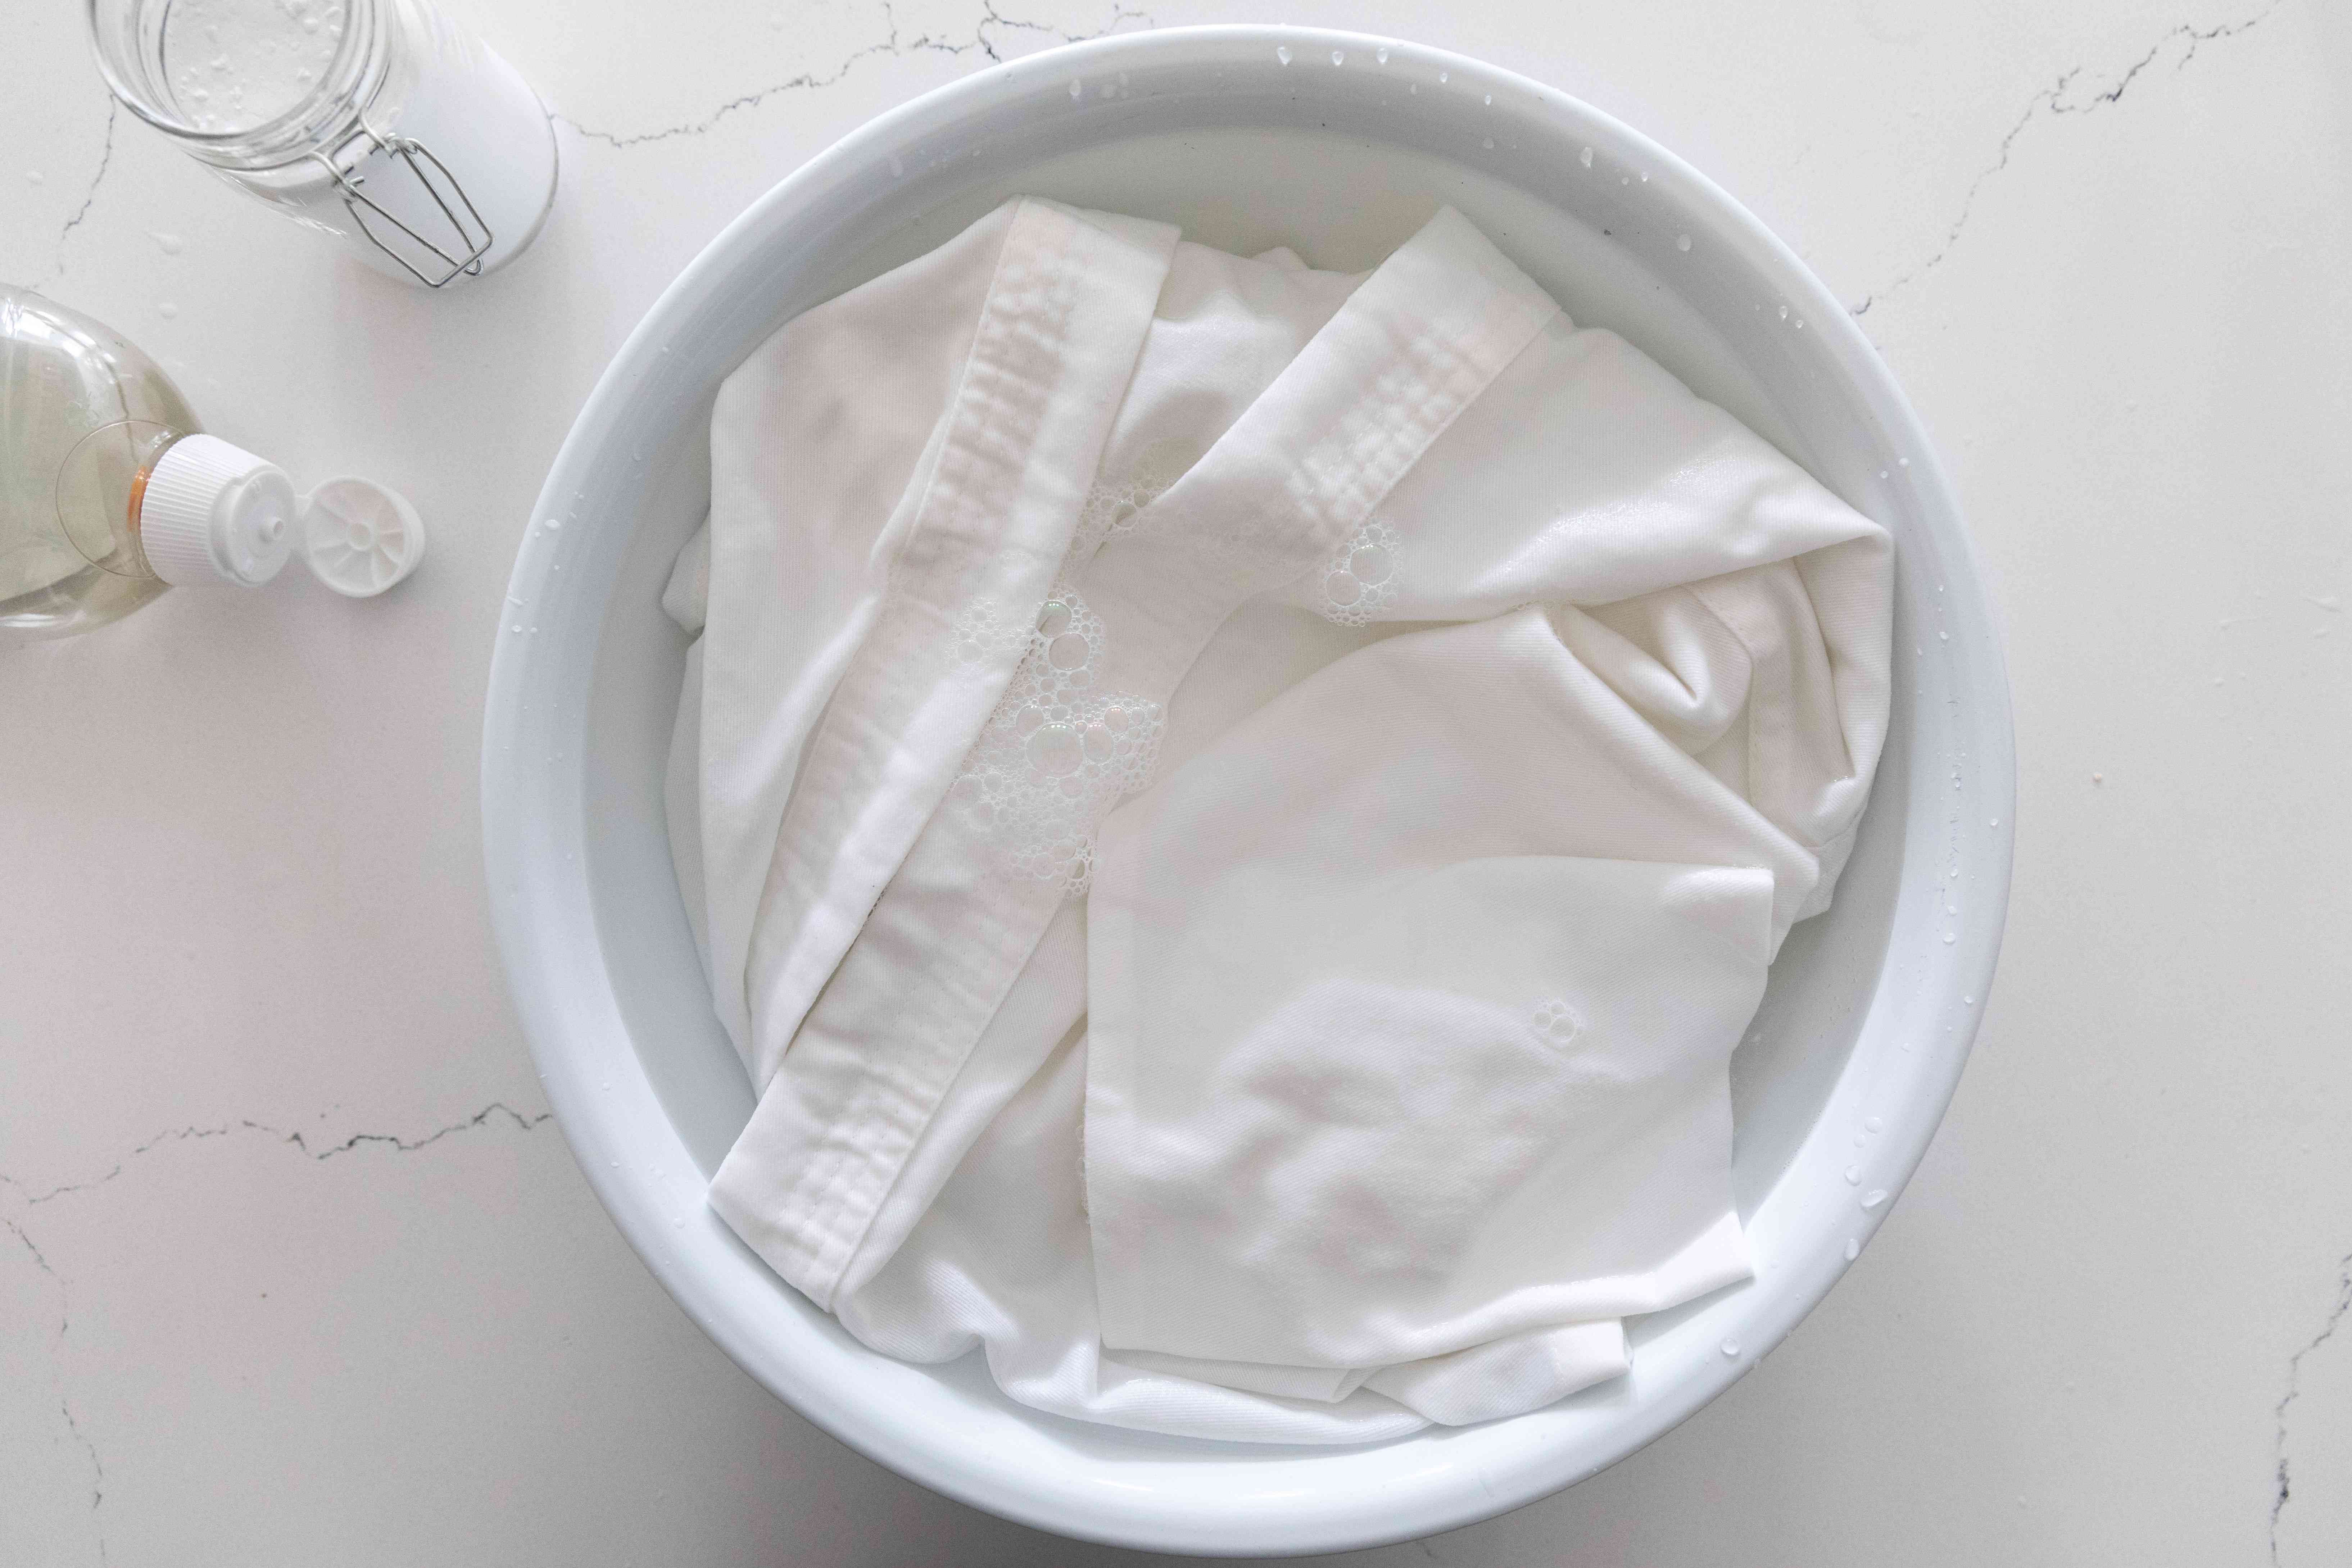 Karate uniforms soaked in large white bowl with heavy-duty laundry detergent and baking soda